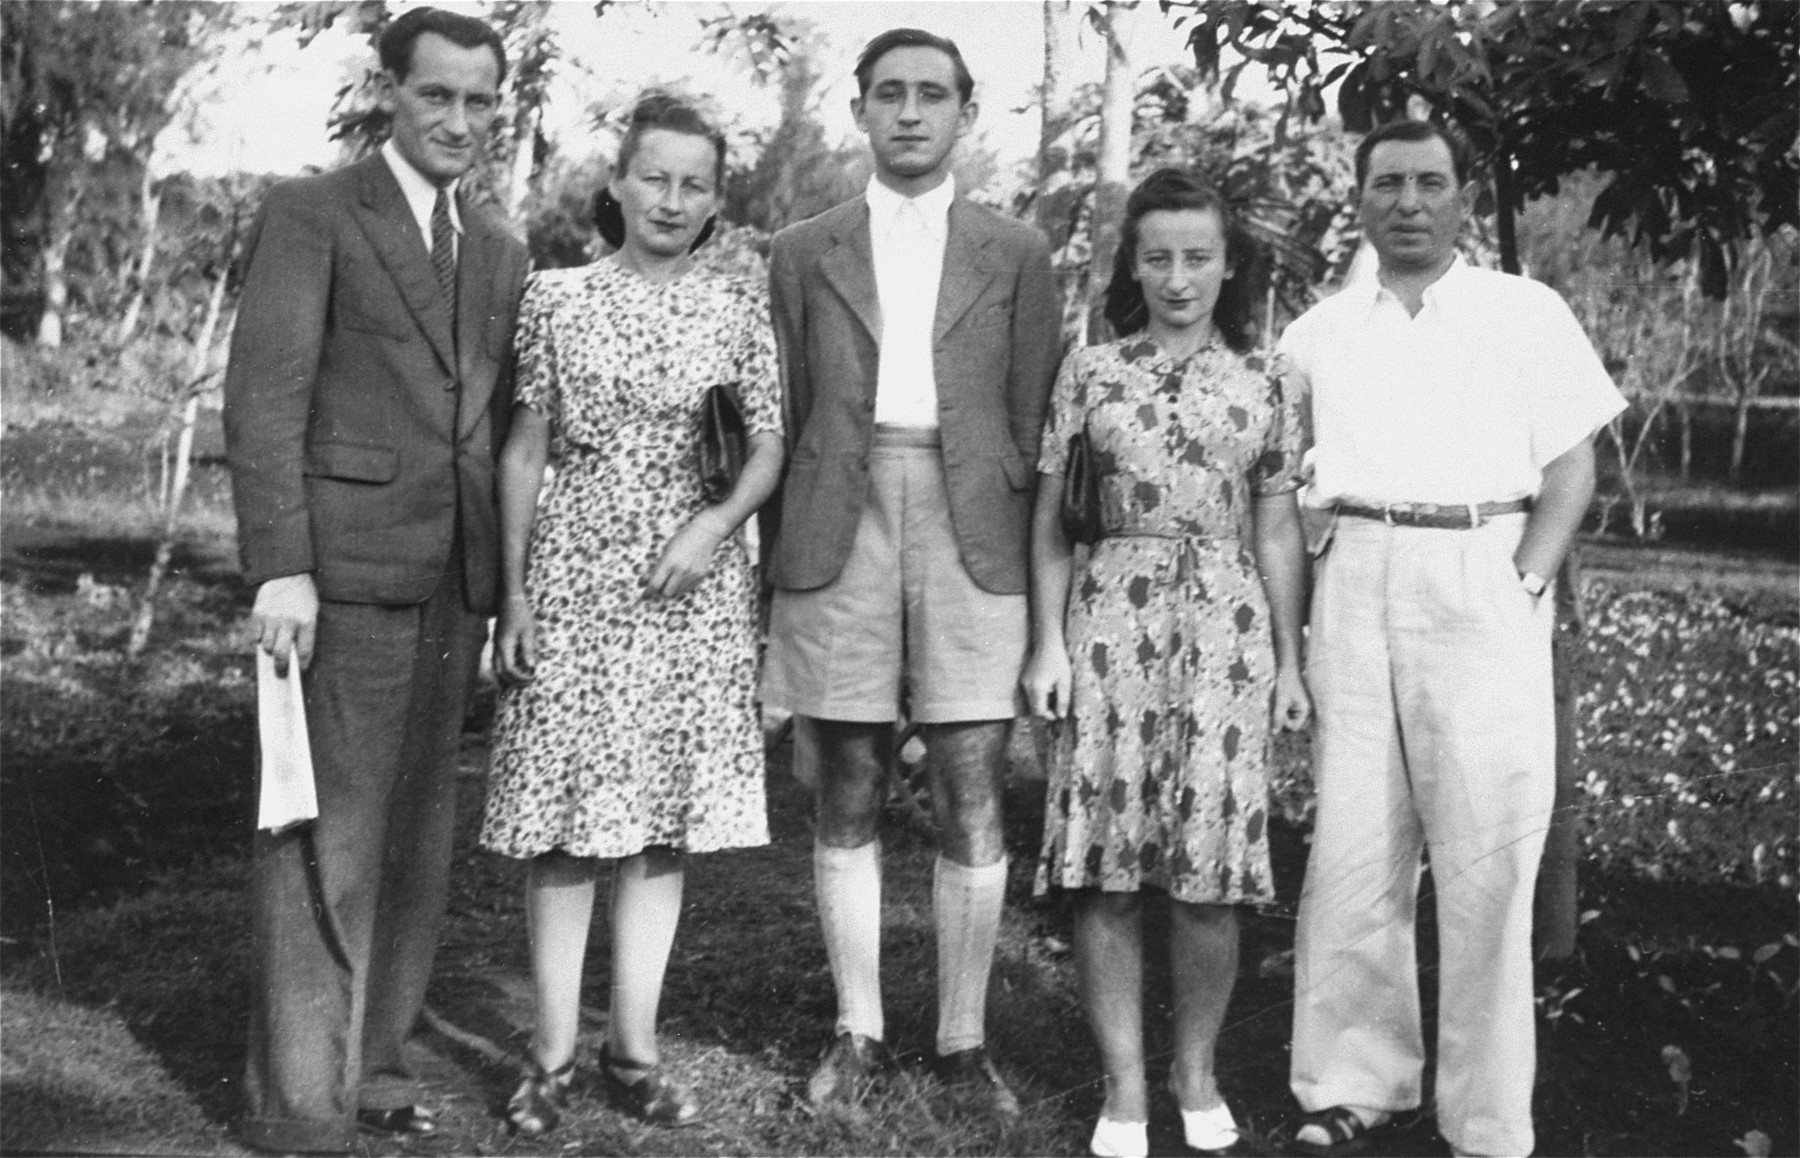 Group portrait of members of the Makowski family from Danzig during their internment on the island of Mauritius.  Pictured from left to right are: Israel Makowski, Fela and Hersh Makowski, Genia (Makowski) Less, and her husband, Beno Less.